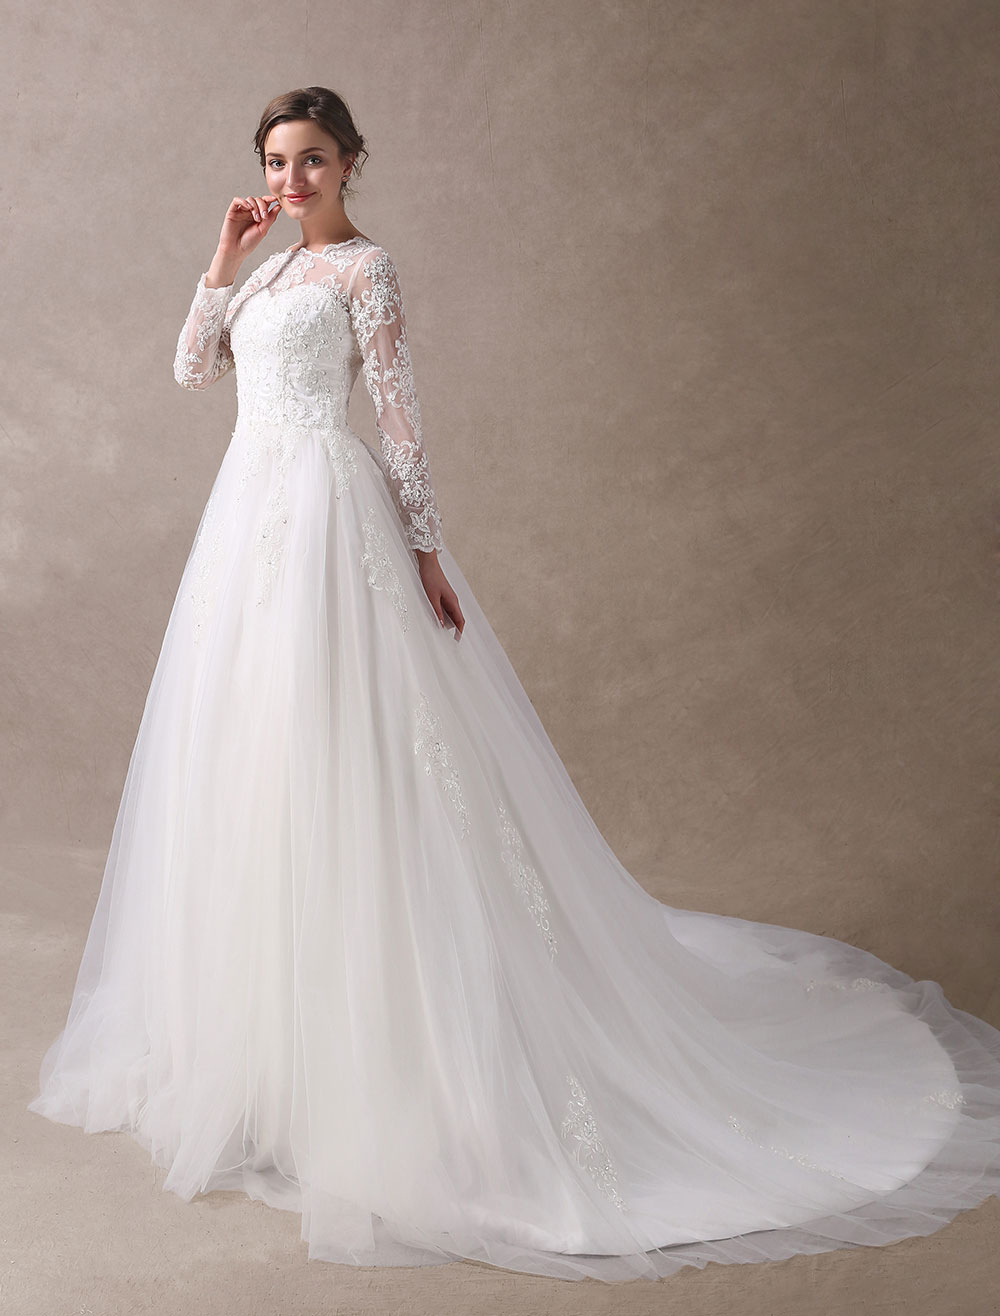 Wedding Dresses Princess Ball Gowns Ivory Long Sleeve Lace Applique Beading Chapel Train Bridal Dress